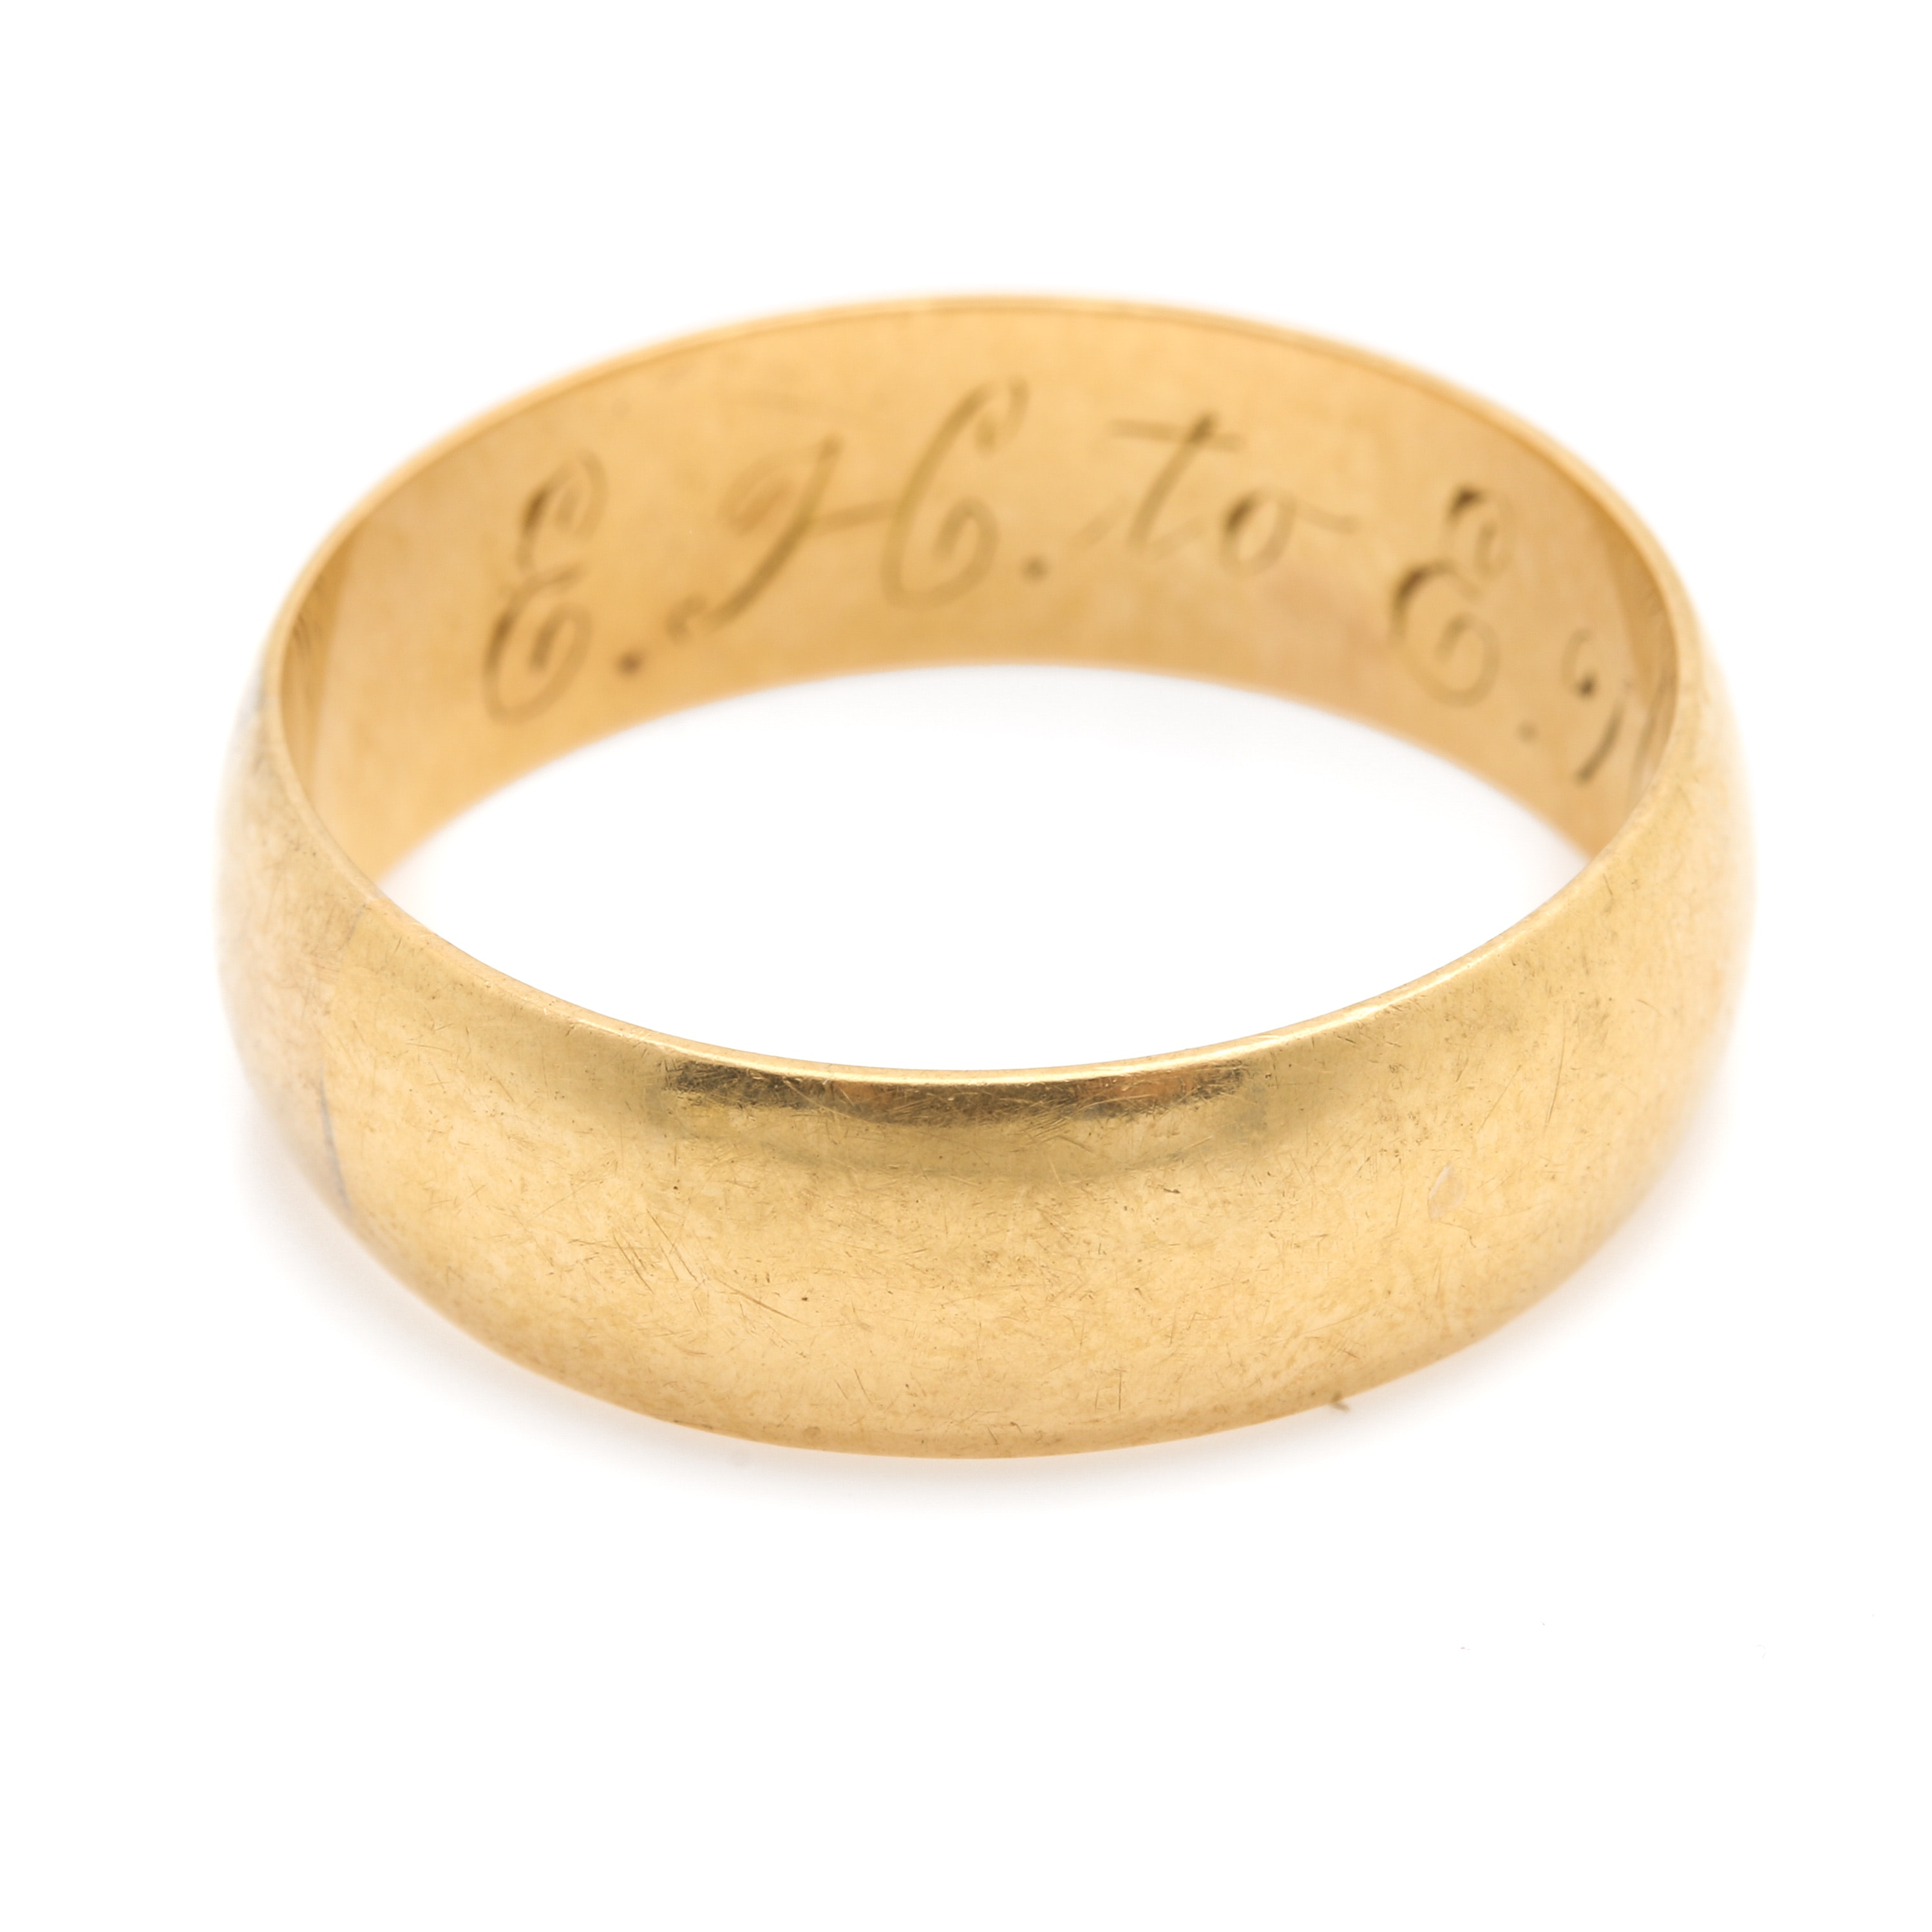 Antique 18K Yellow Gold Band